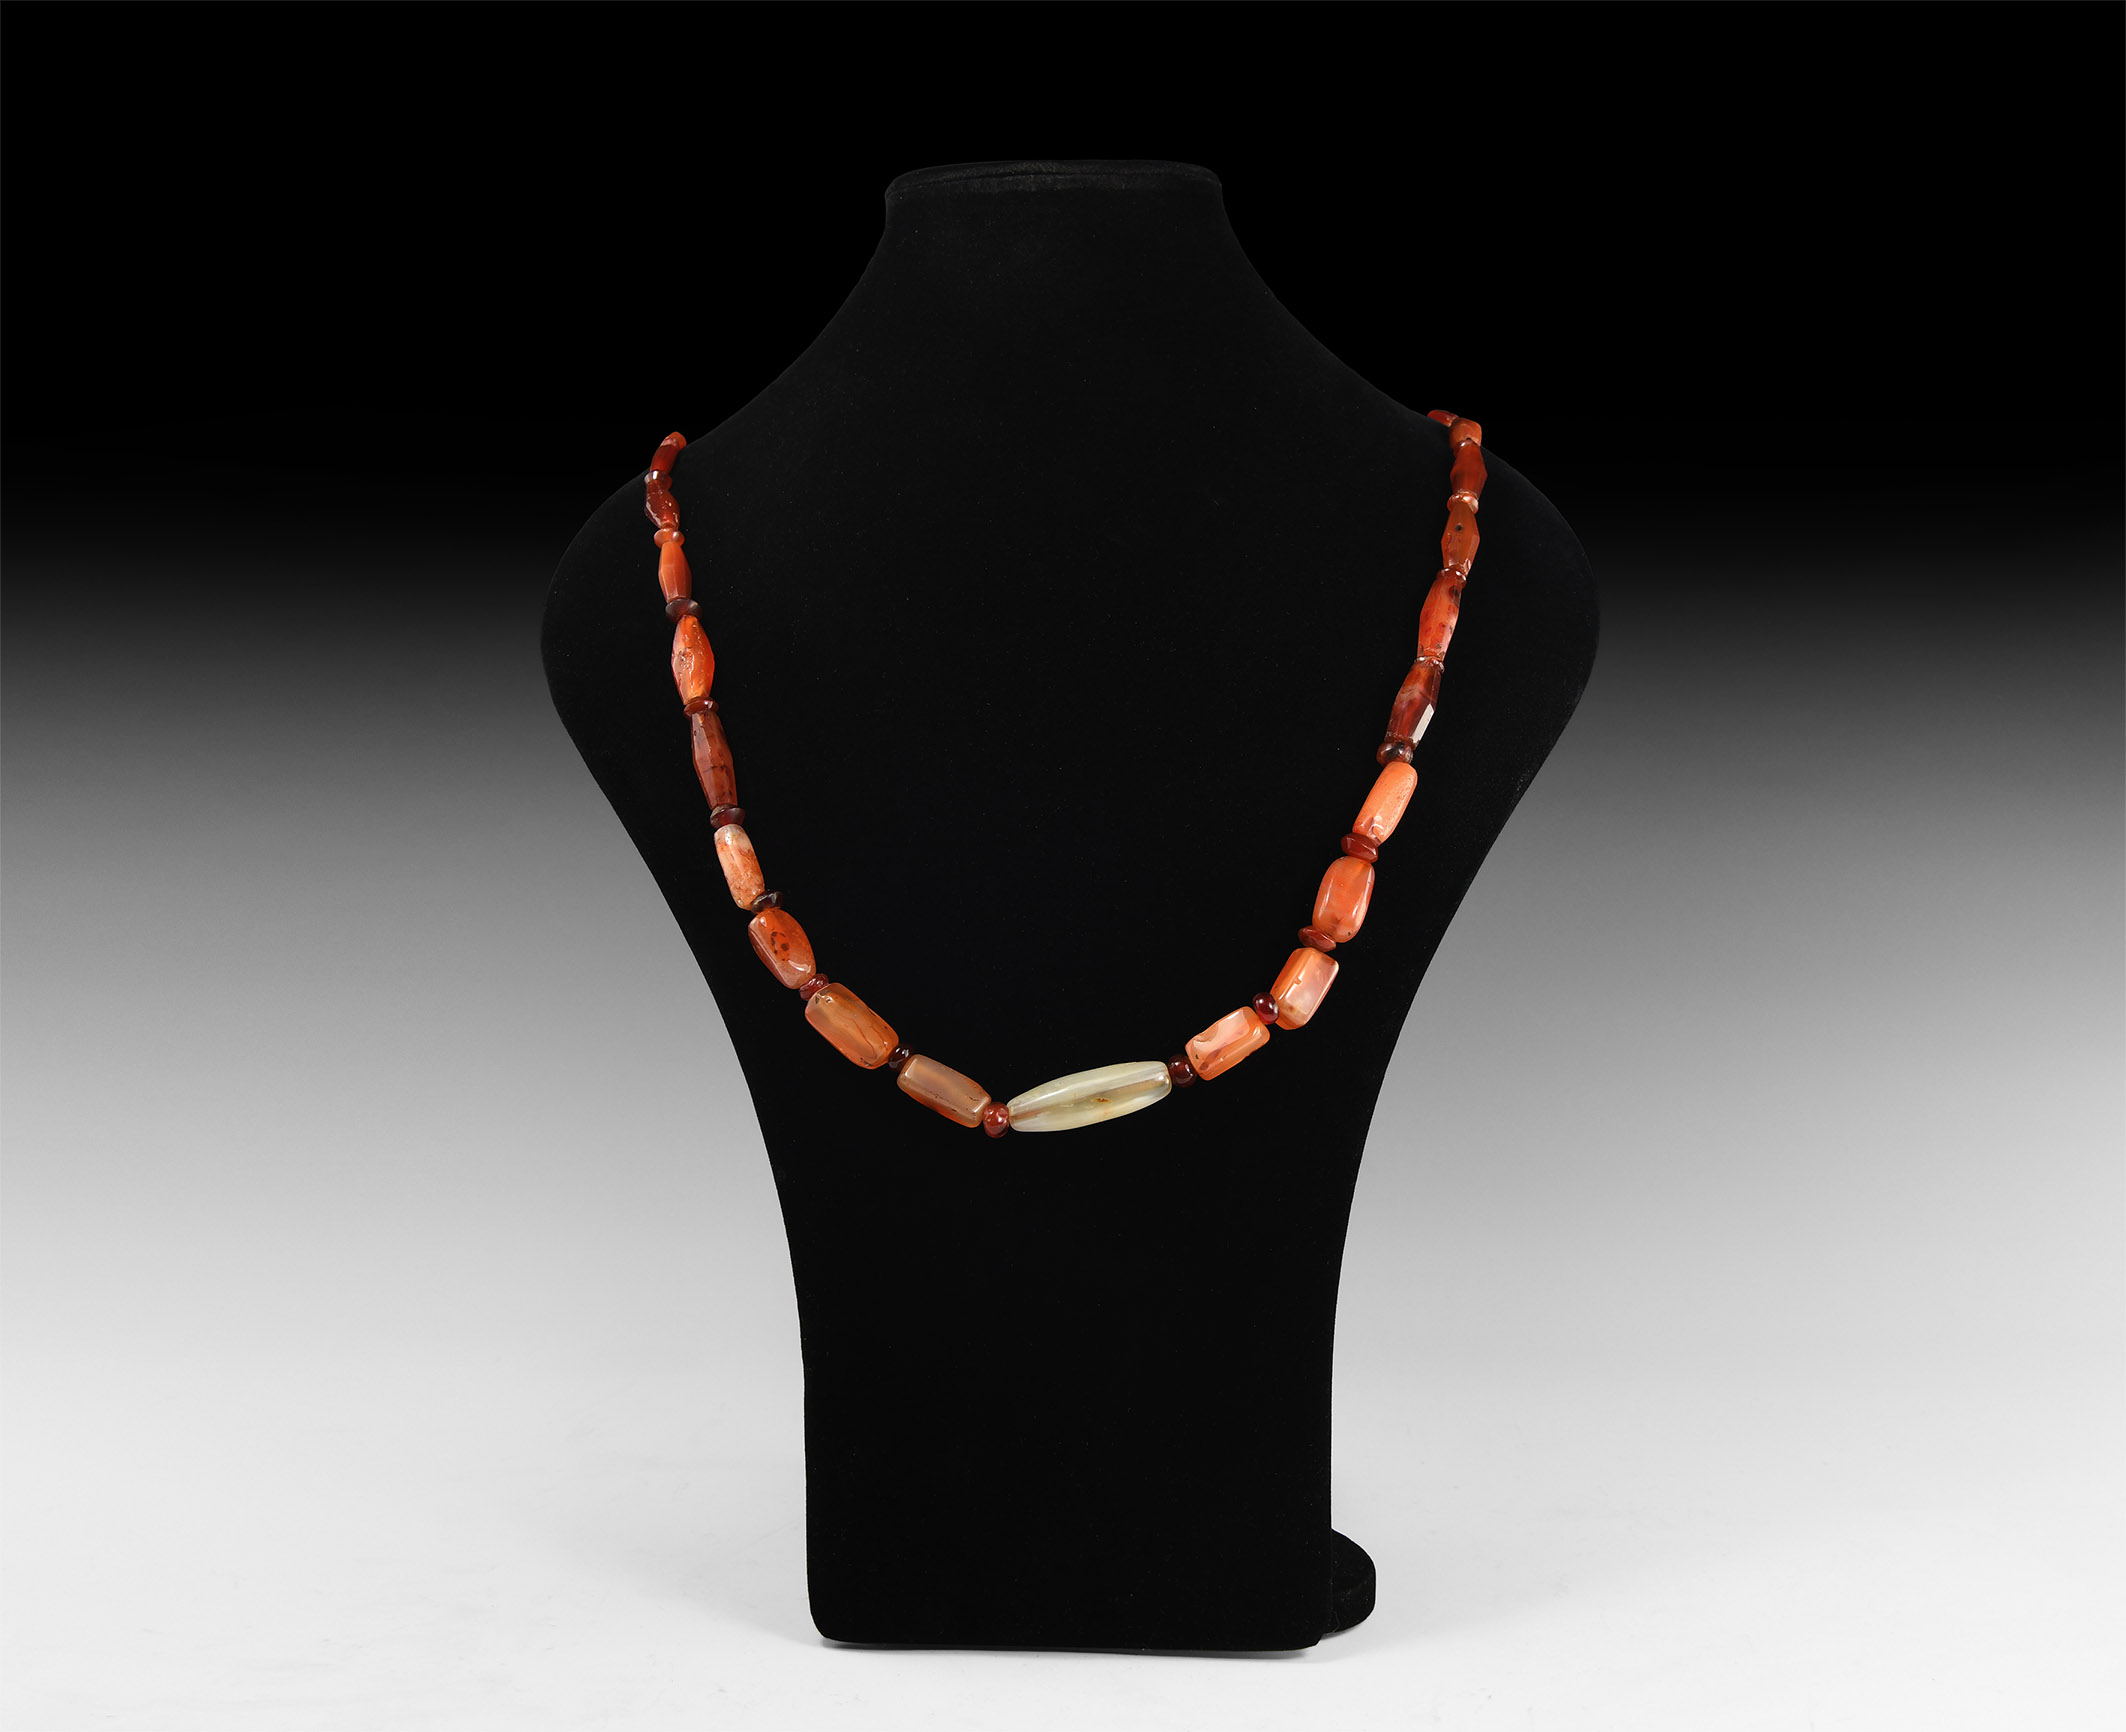 Roman and Other Carnelian Bead Necklace